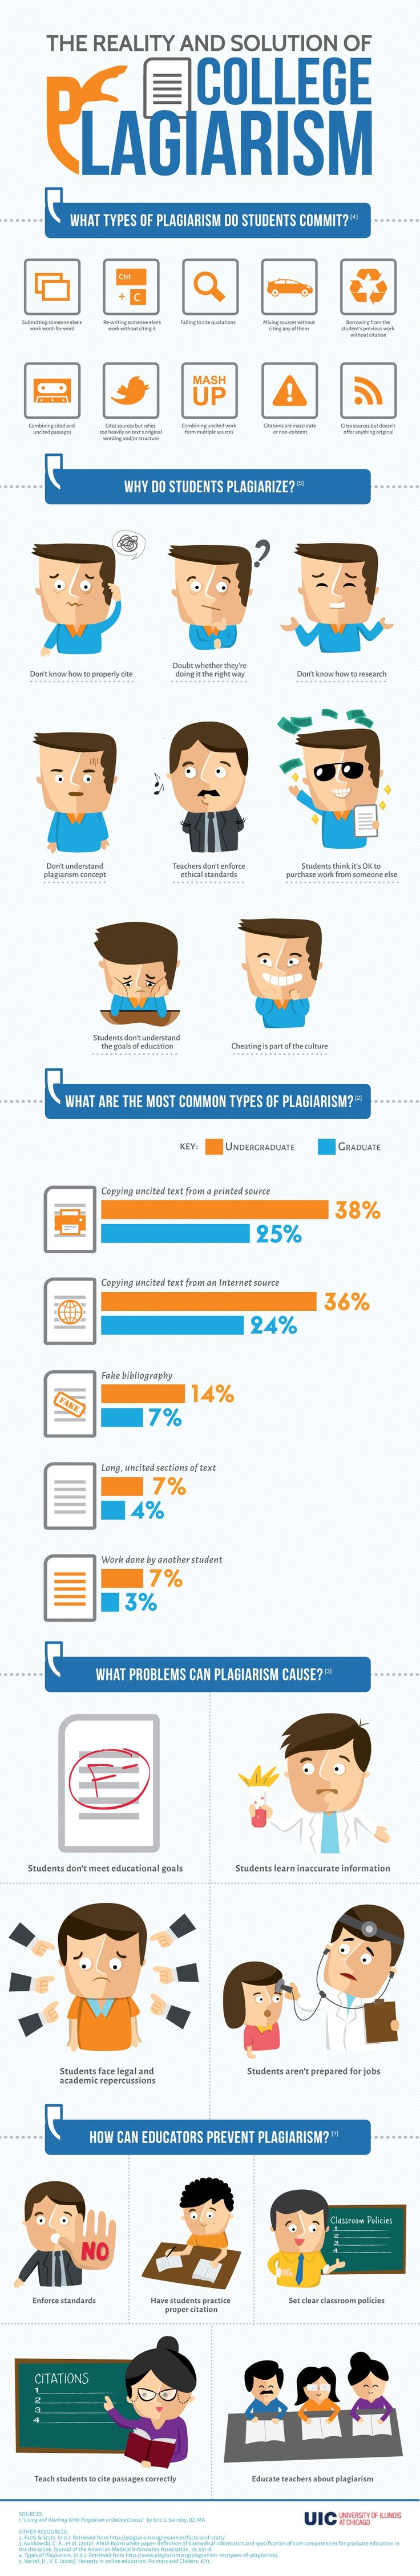 best ideas about check plagiarism check why students plagiarize and what schools can do to stop it infographic